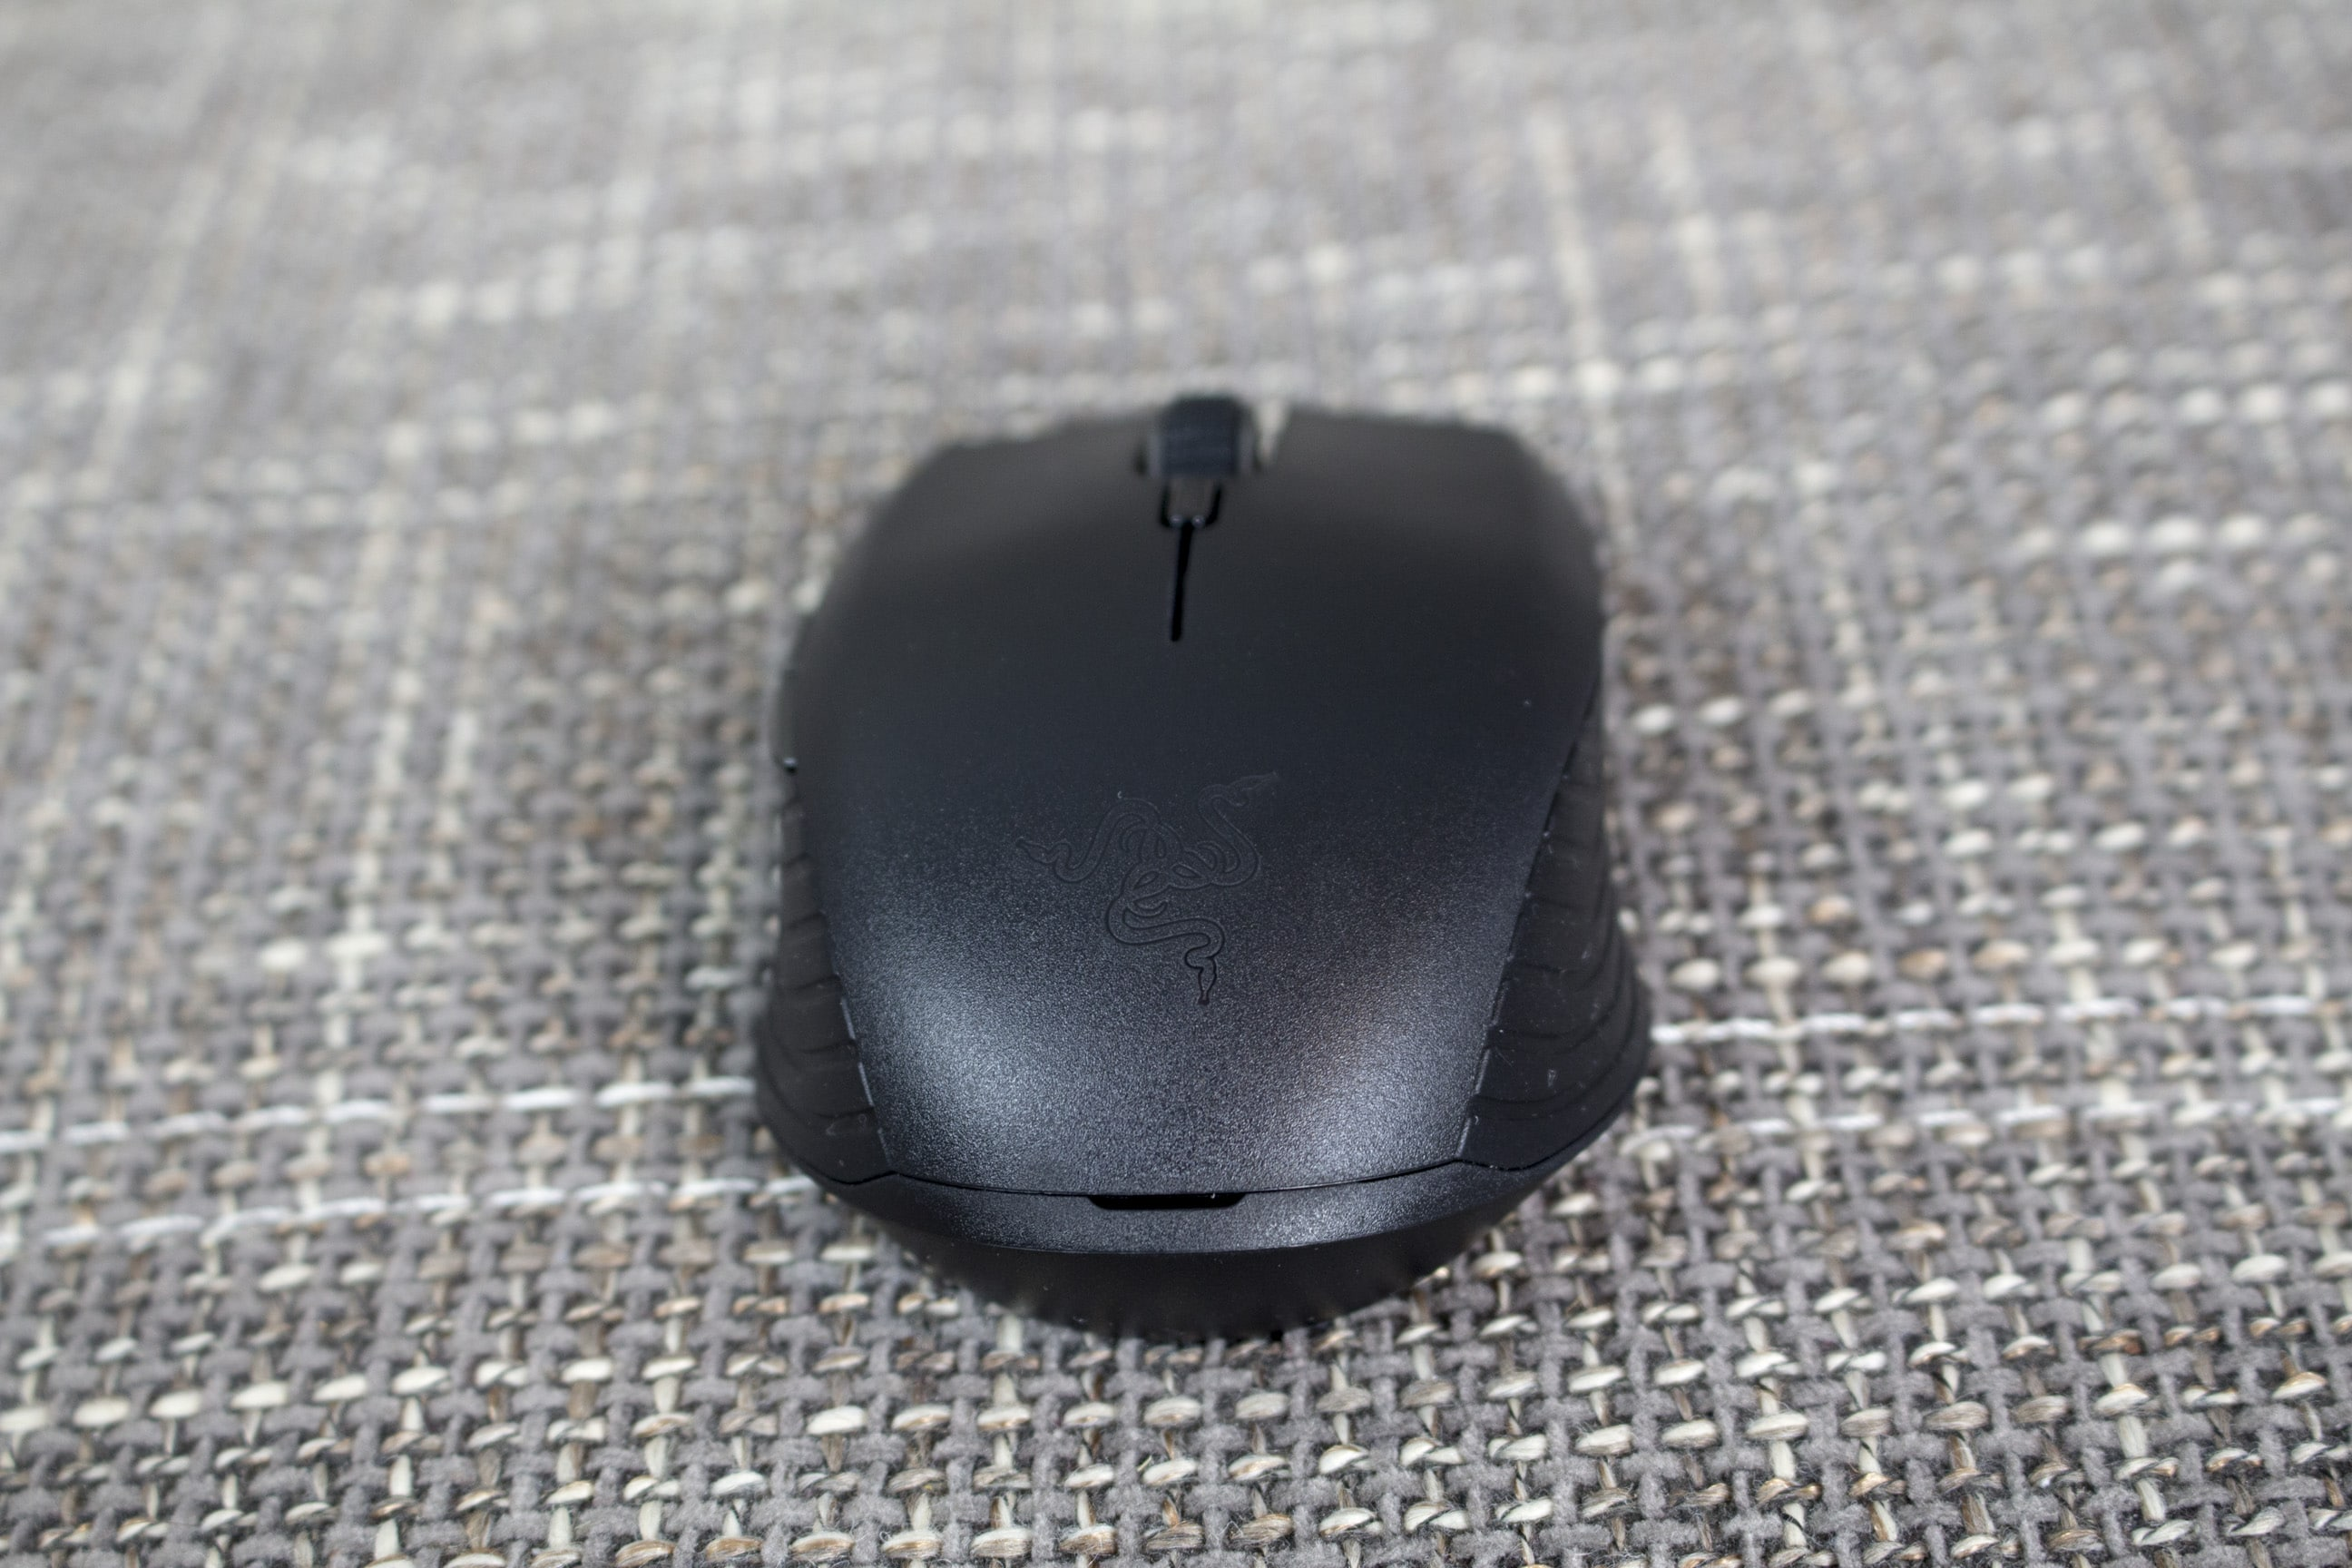 Razer Atheris Review: A Mobile Rodent with Endurance